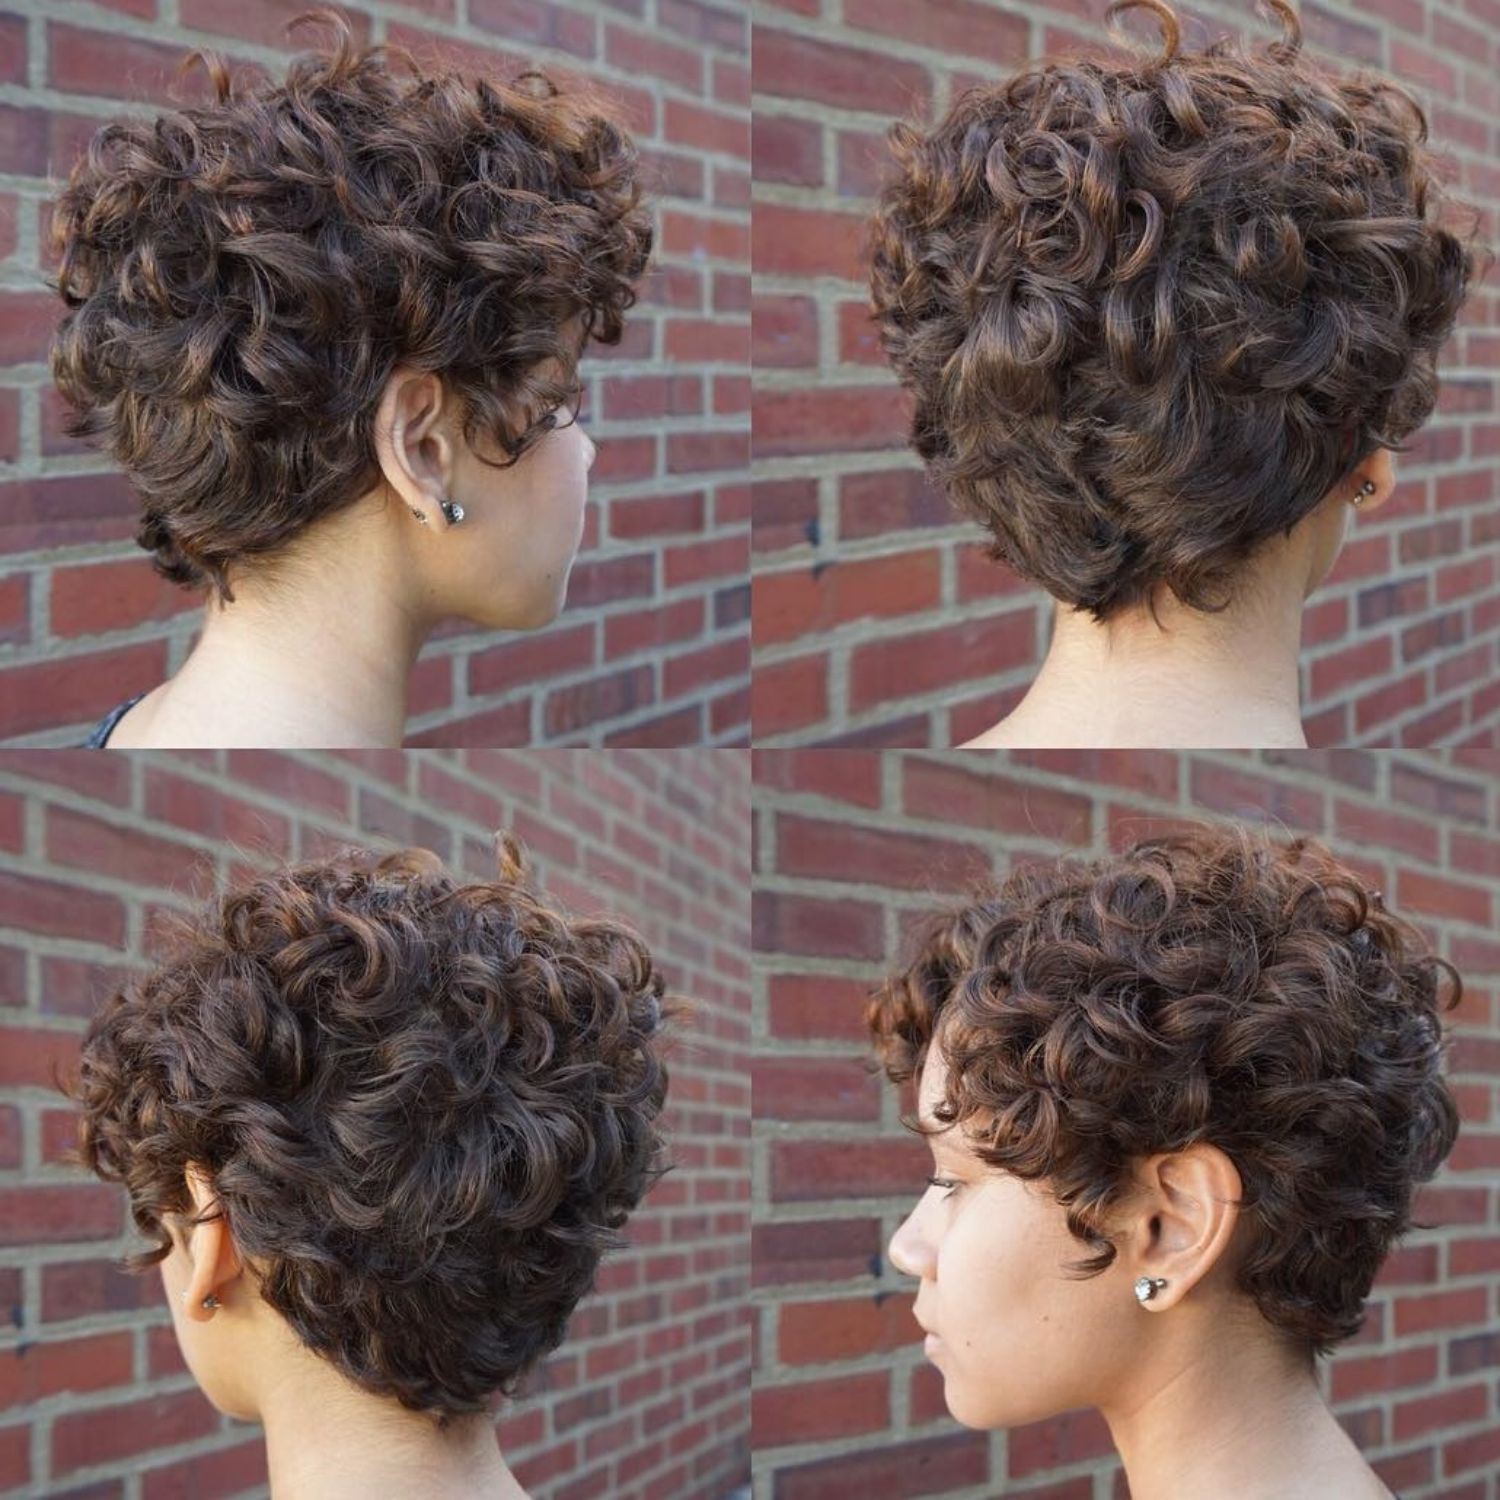 Brown Curly Pixie Hairstyle Curly Pixie Haircuts Short Wavy Hair Curly Hair Styles